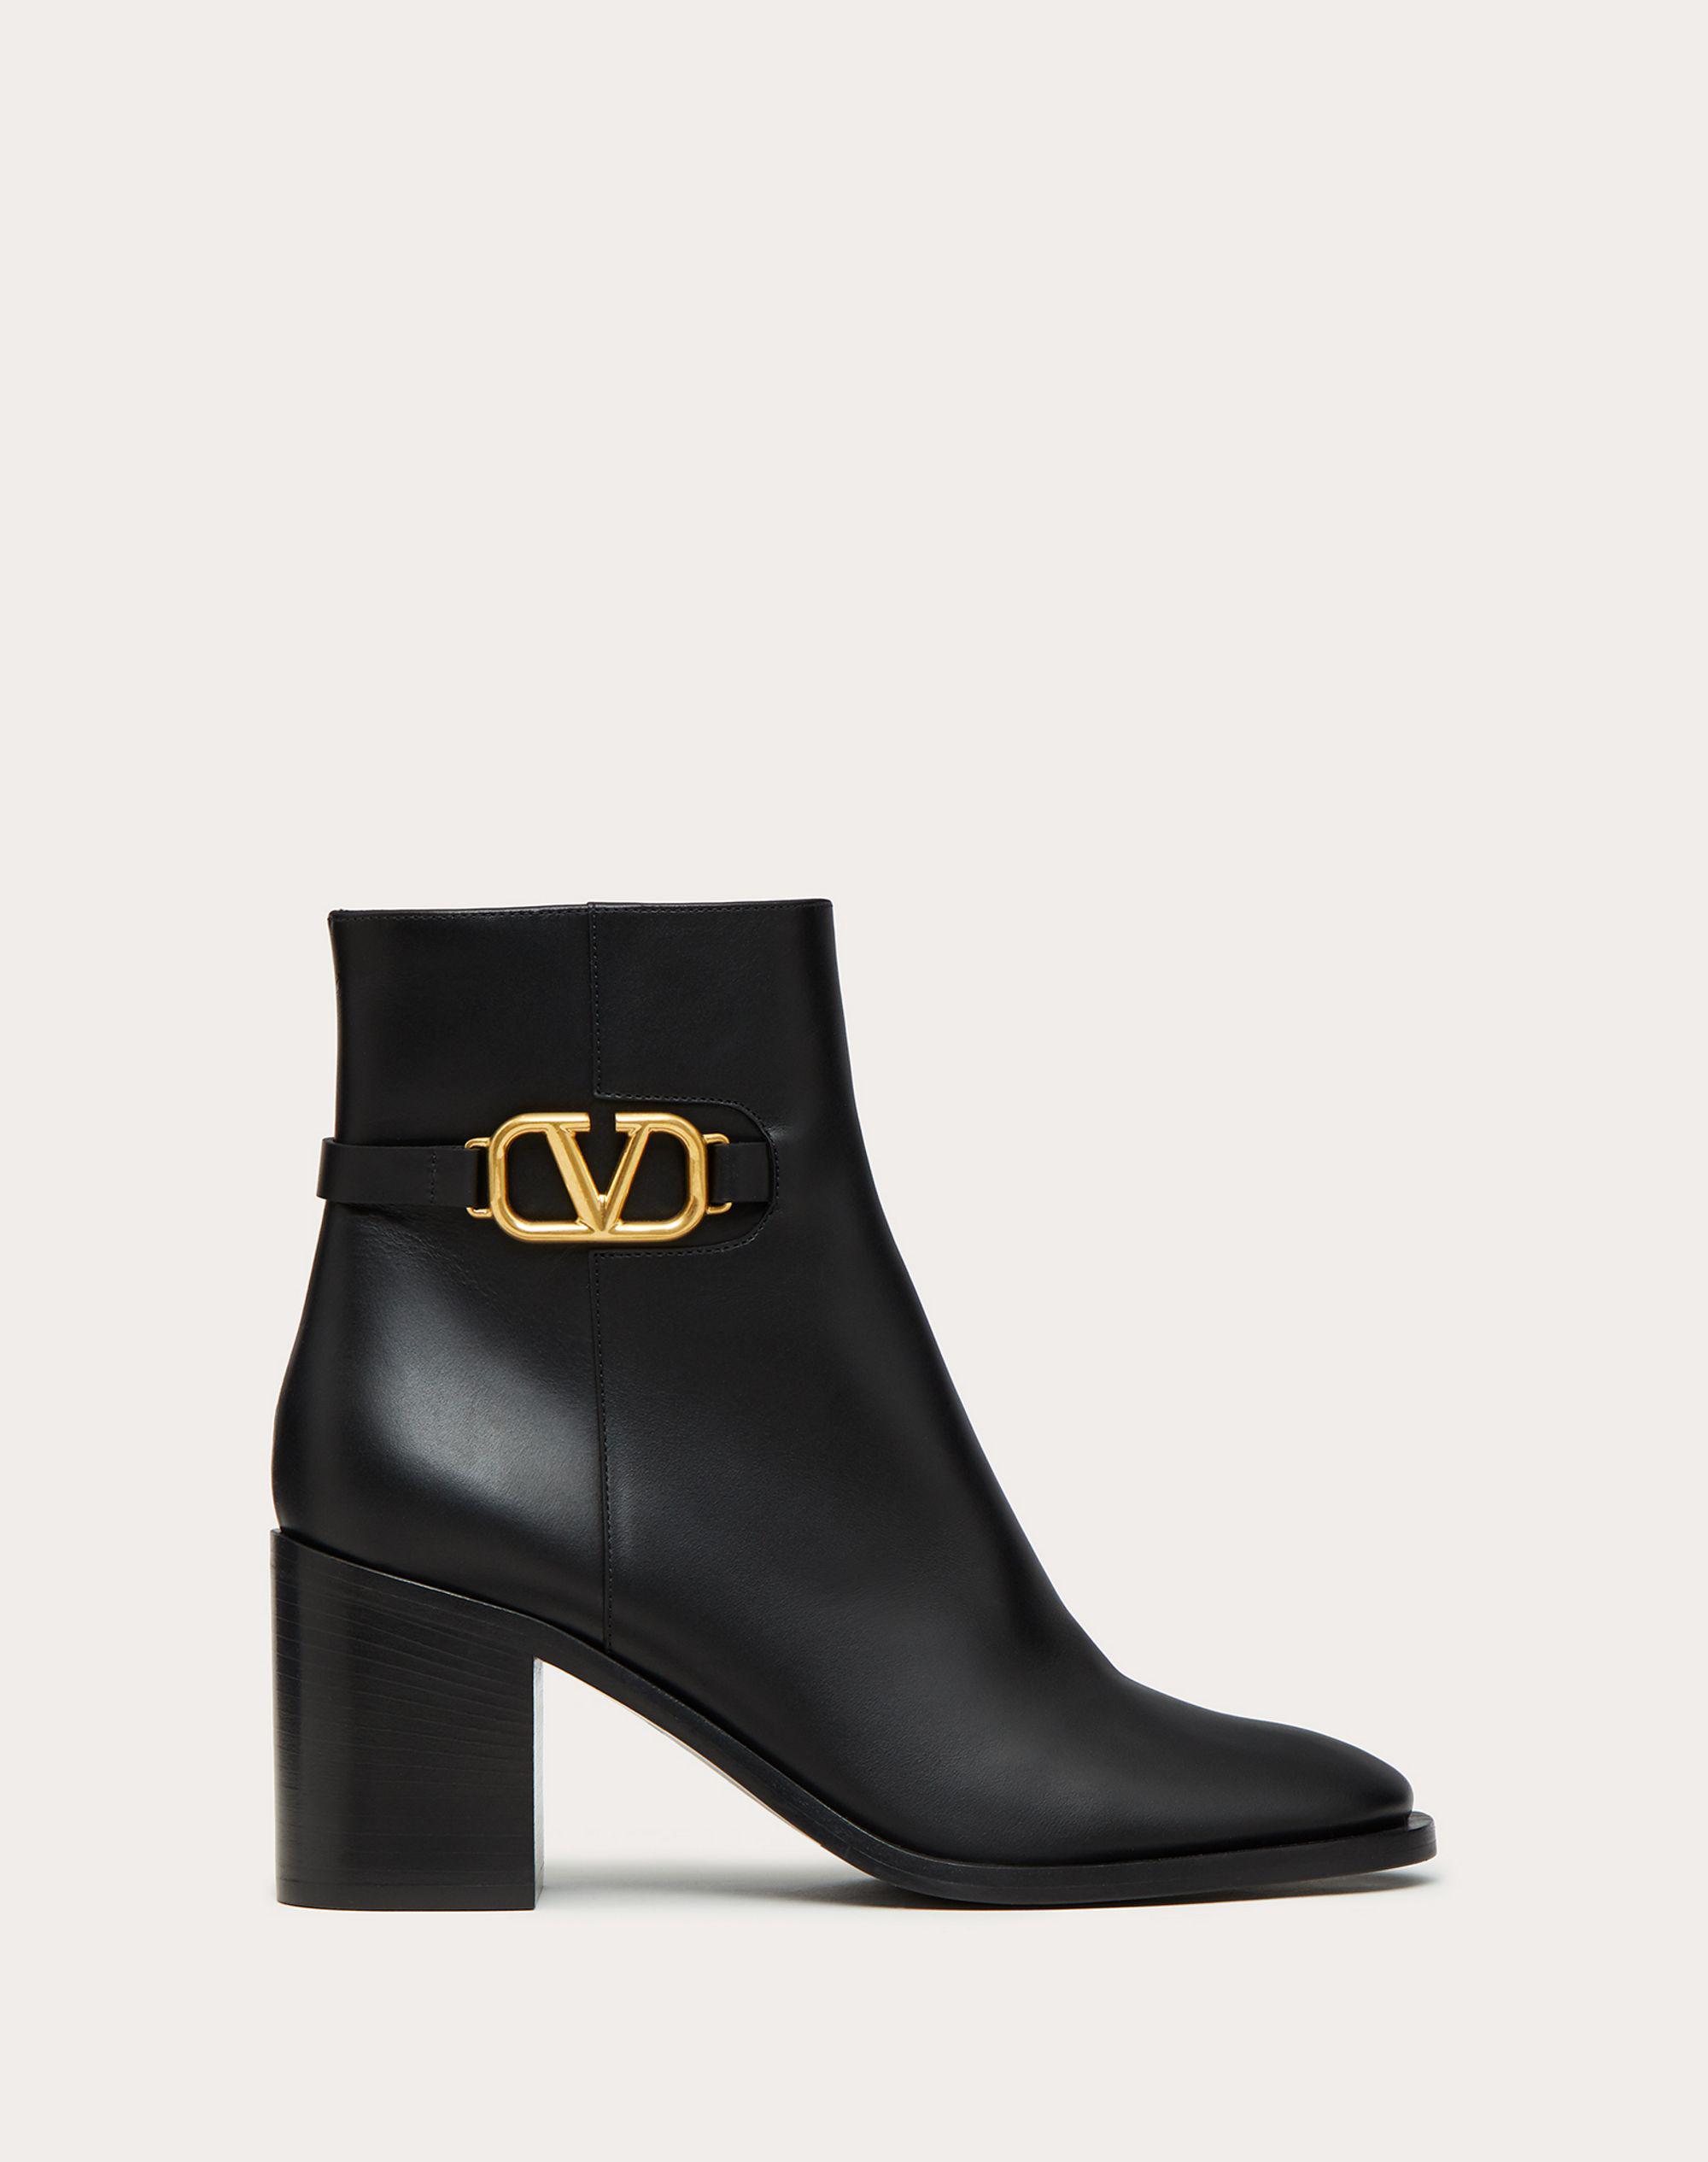 VLOGO SIGNATURE CALFSKIN ANKLE BOOT 75MM